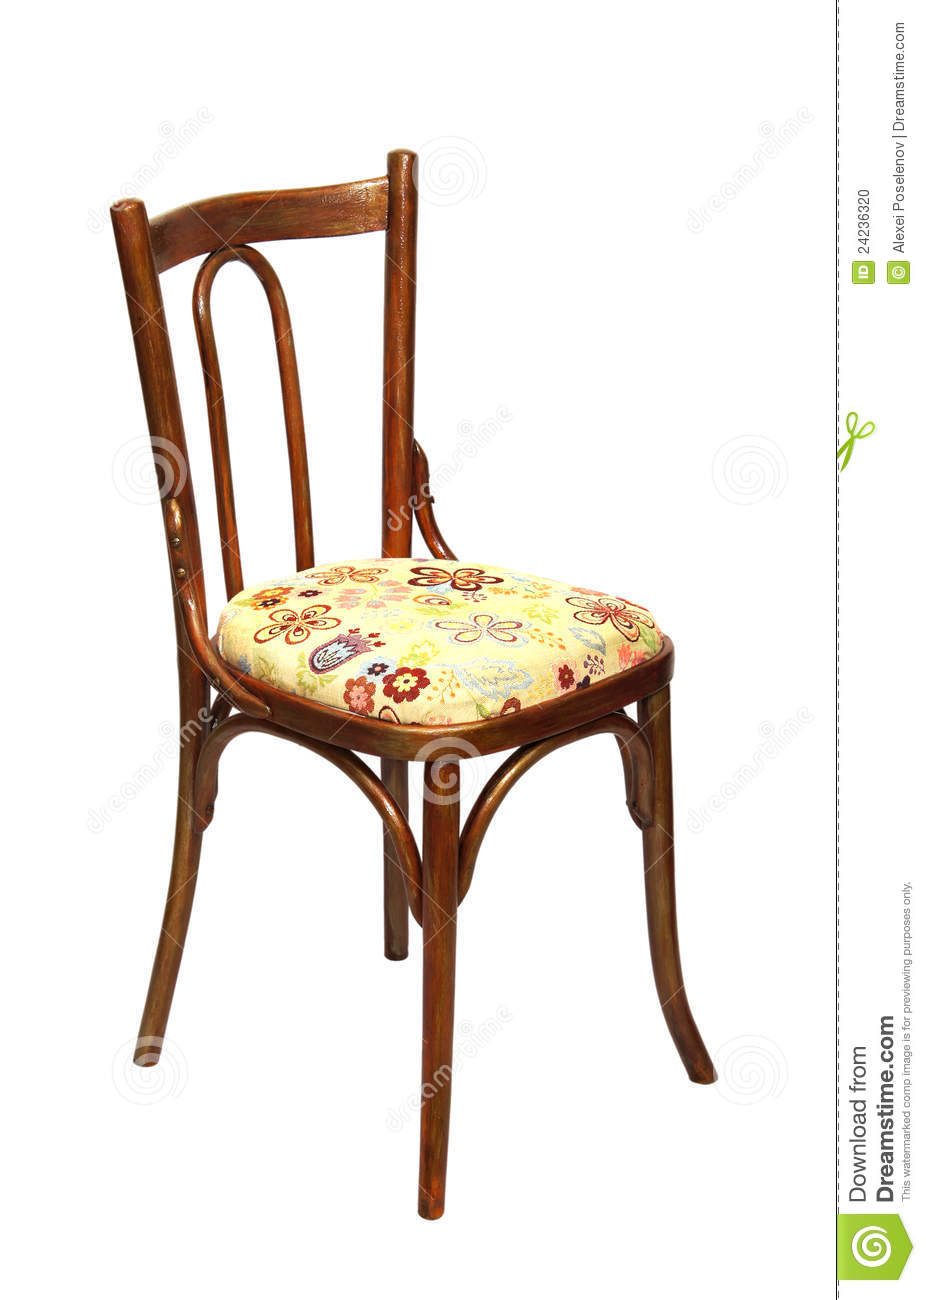 Old wooden chair stock photo image 24236320